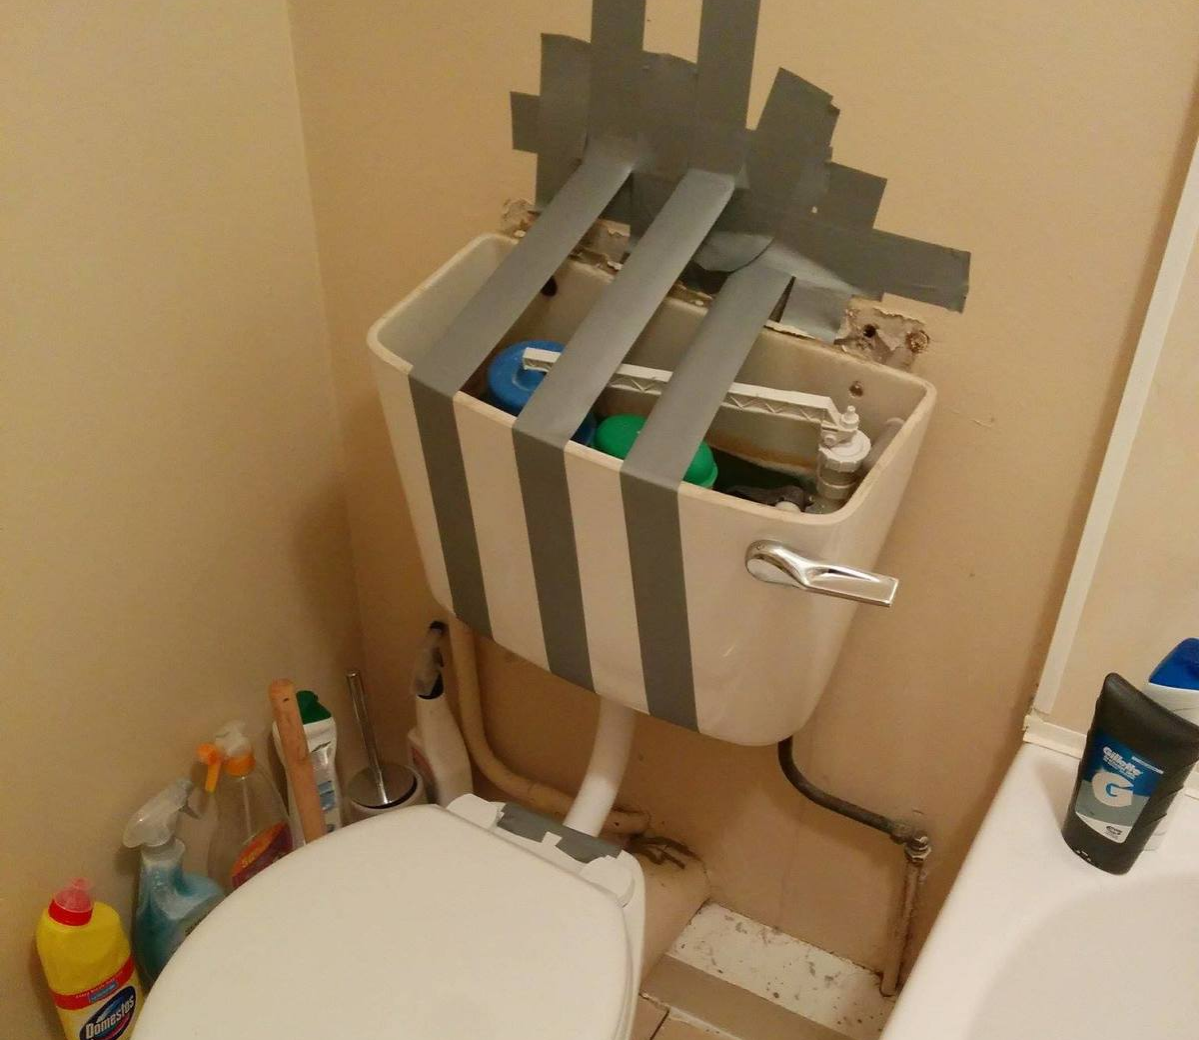 duct tape toilet repairman